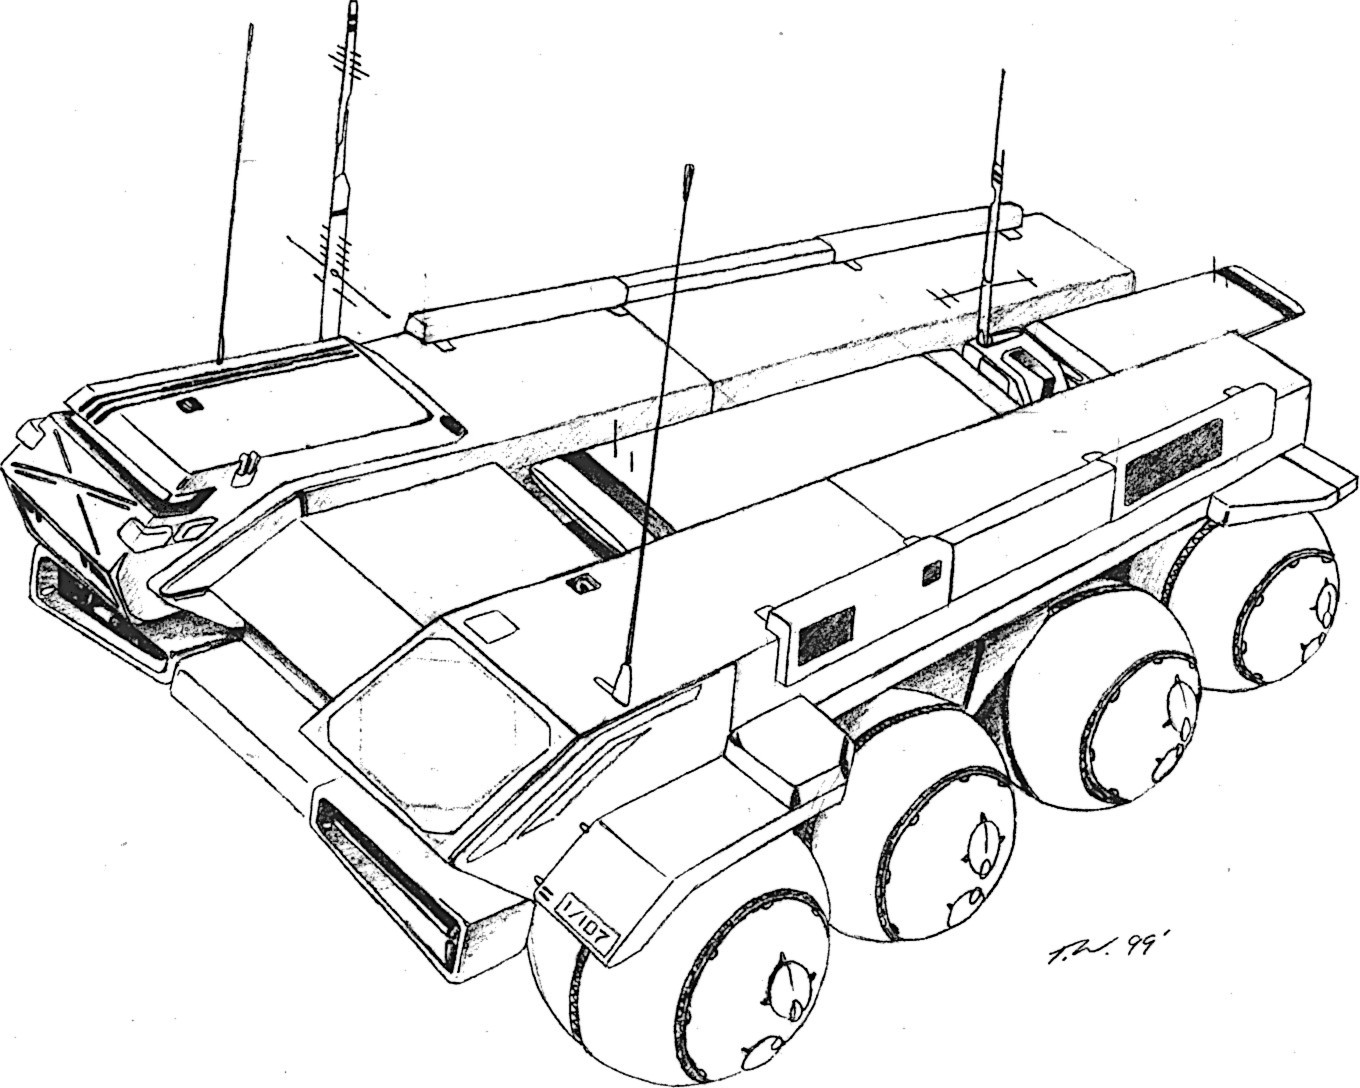 december 2015 mecha journal page 5 105Mm Howitzer Model gmcu airborne mand and control early warning aerospacecraf 2